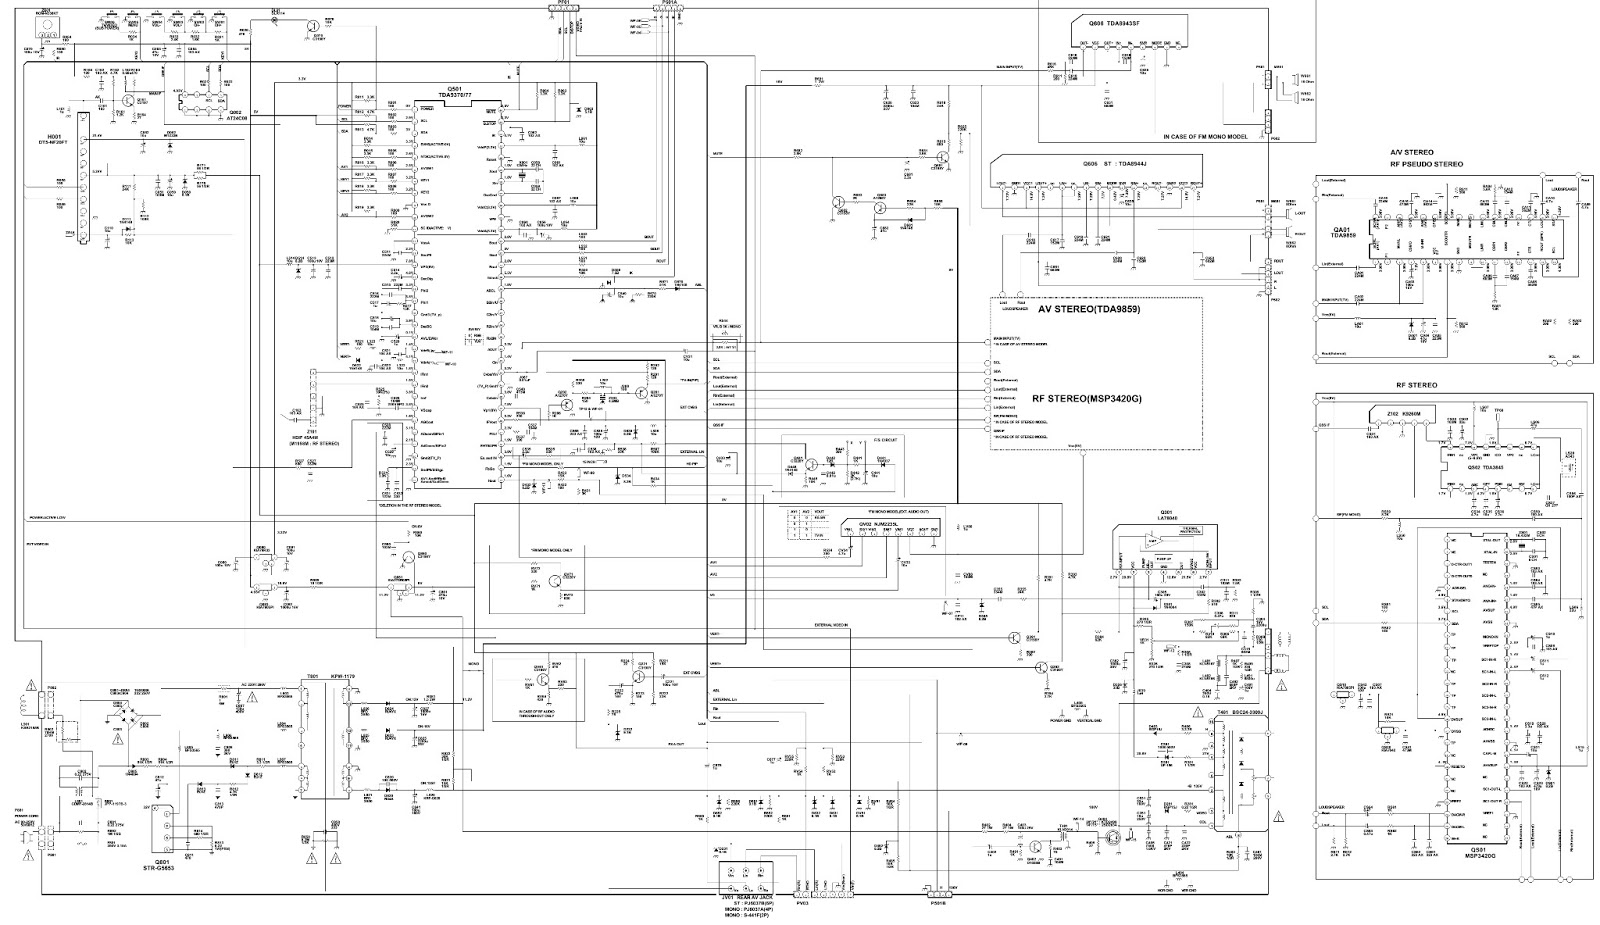 t v circuit diagram free download wiring library Electronic Circuit Diagram Software Free troubleshooting crt tv no picture audio ok white screen